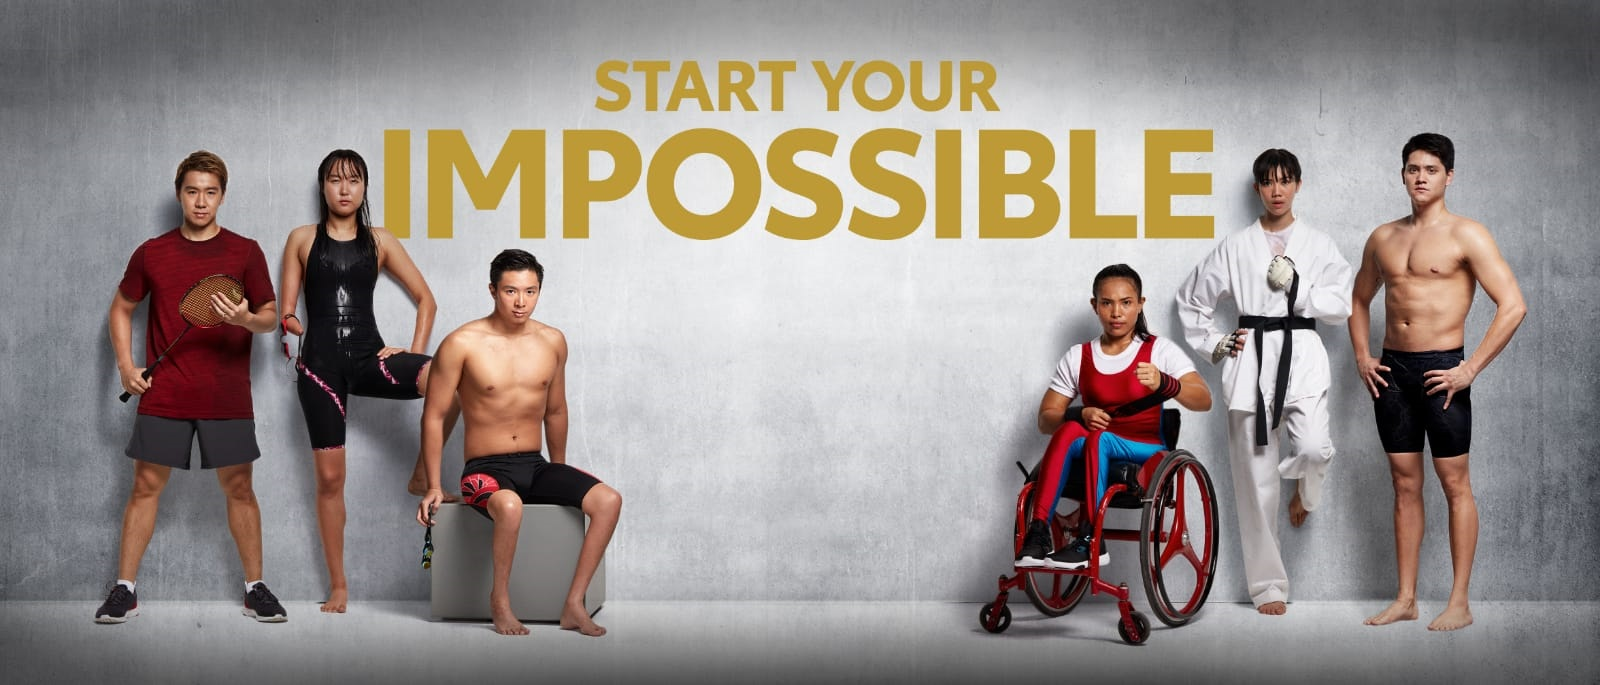 Toyota Rolls Out 'Start Your Impossible' Global Corporate Initiative in Asia Region